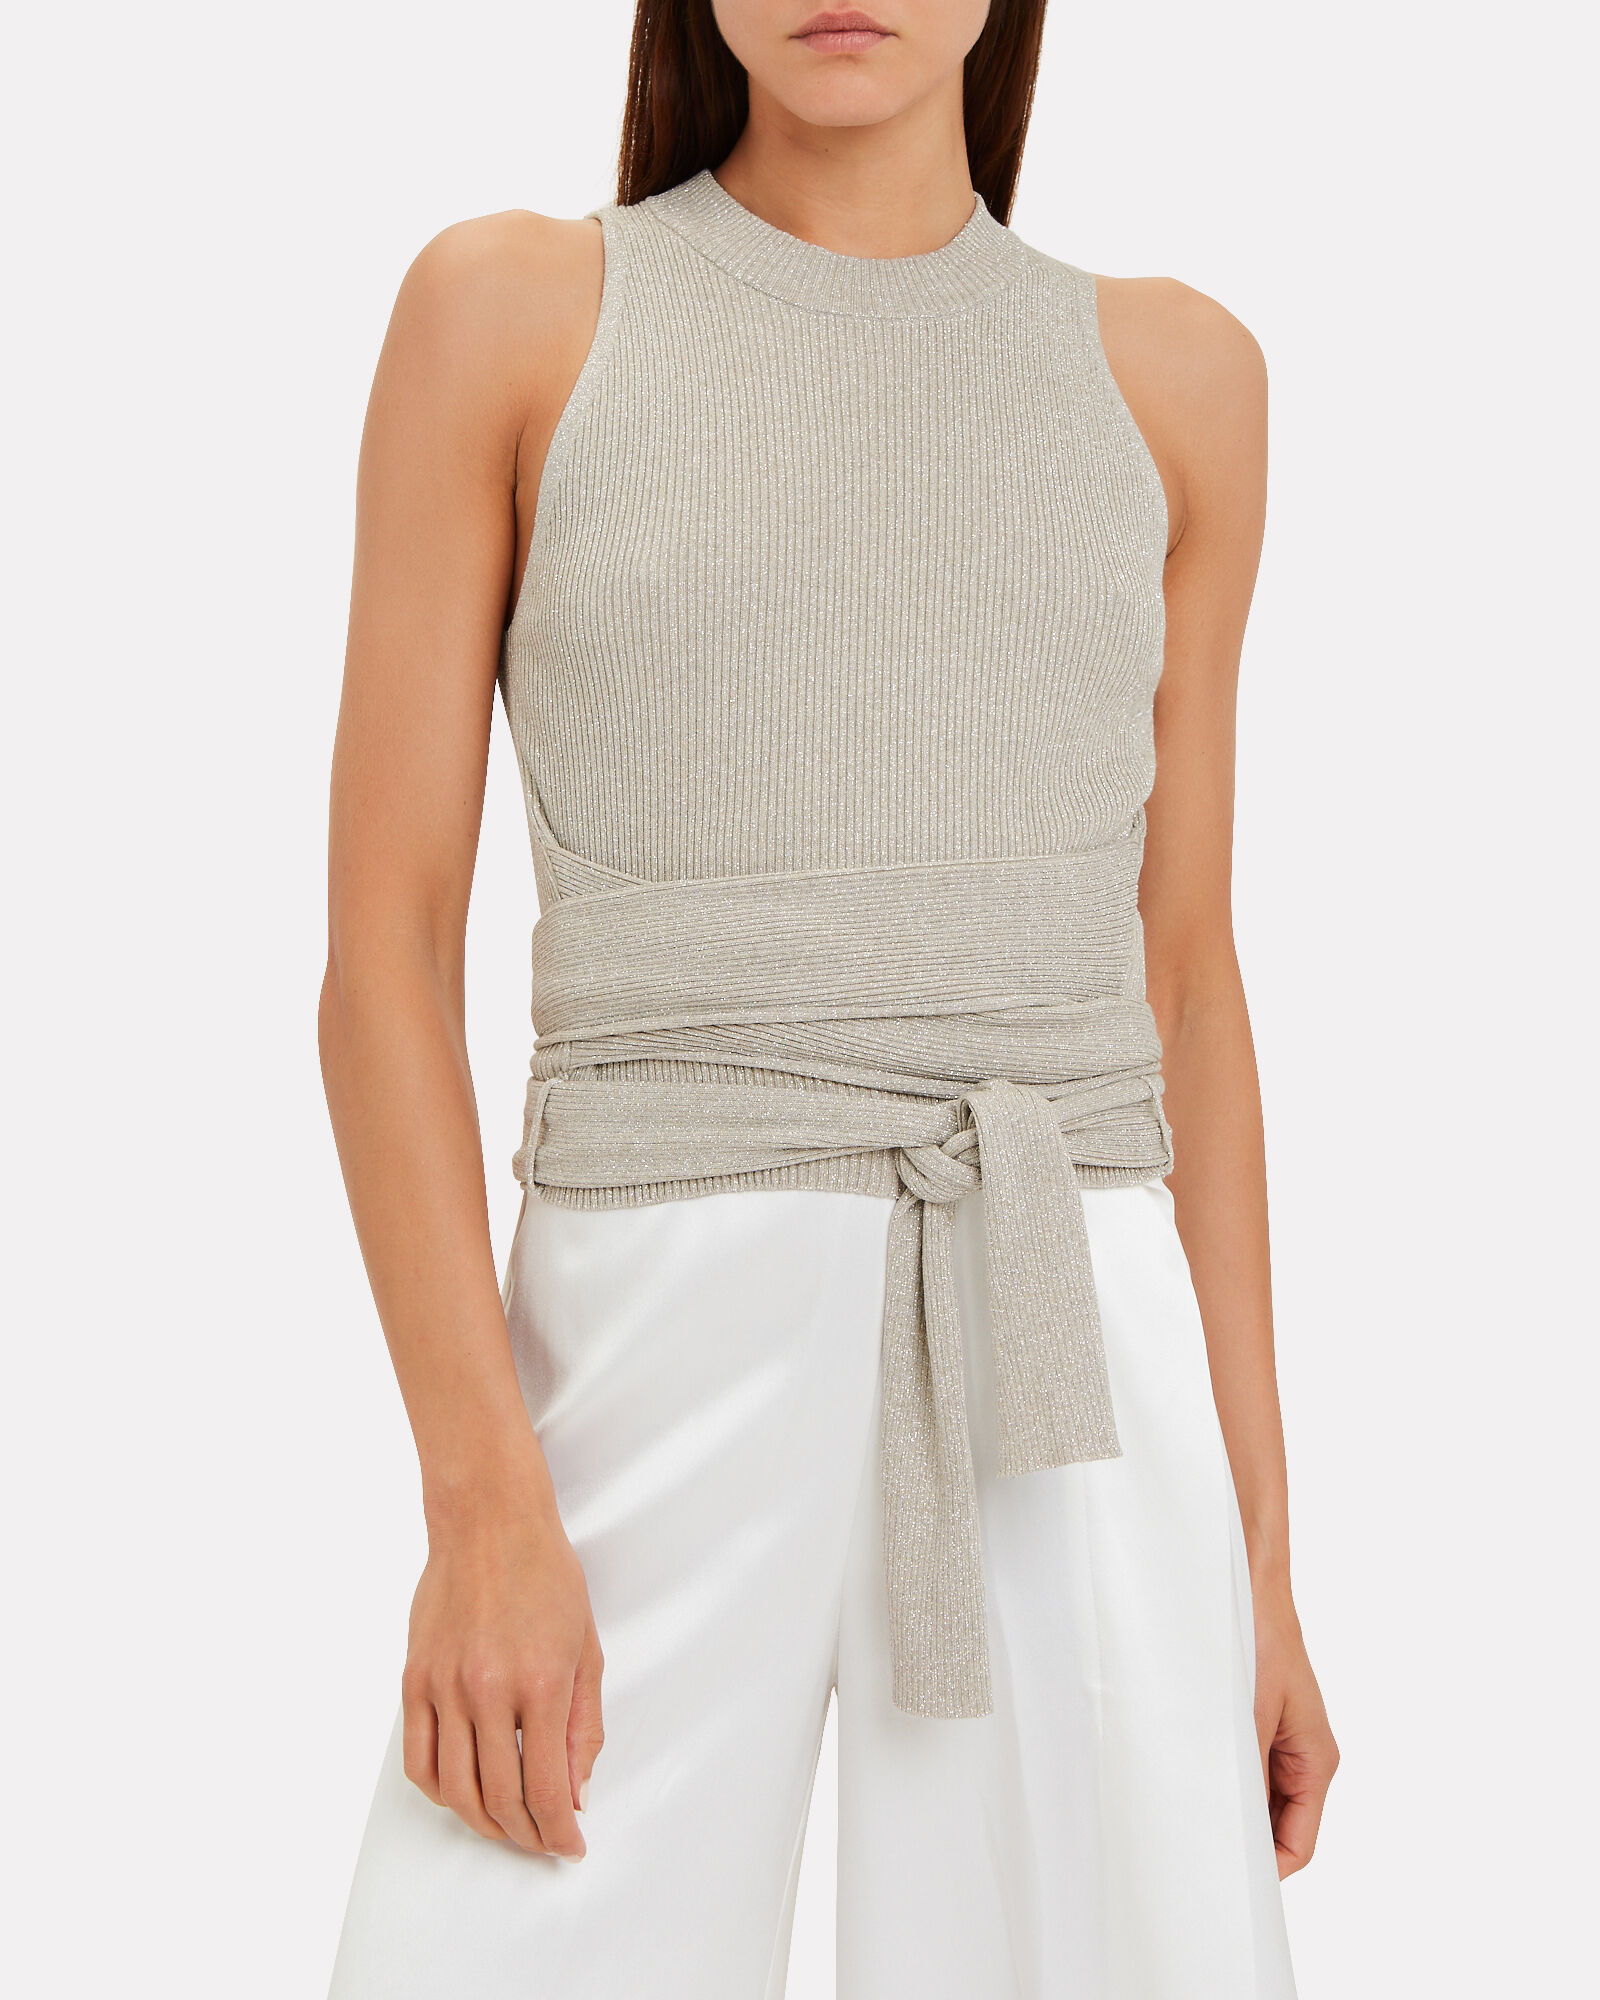 Knit Top With Waist Tie